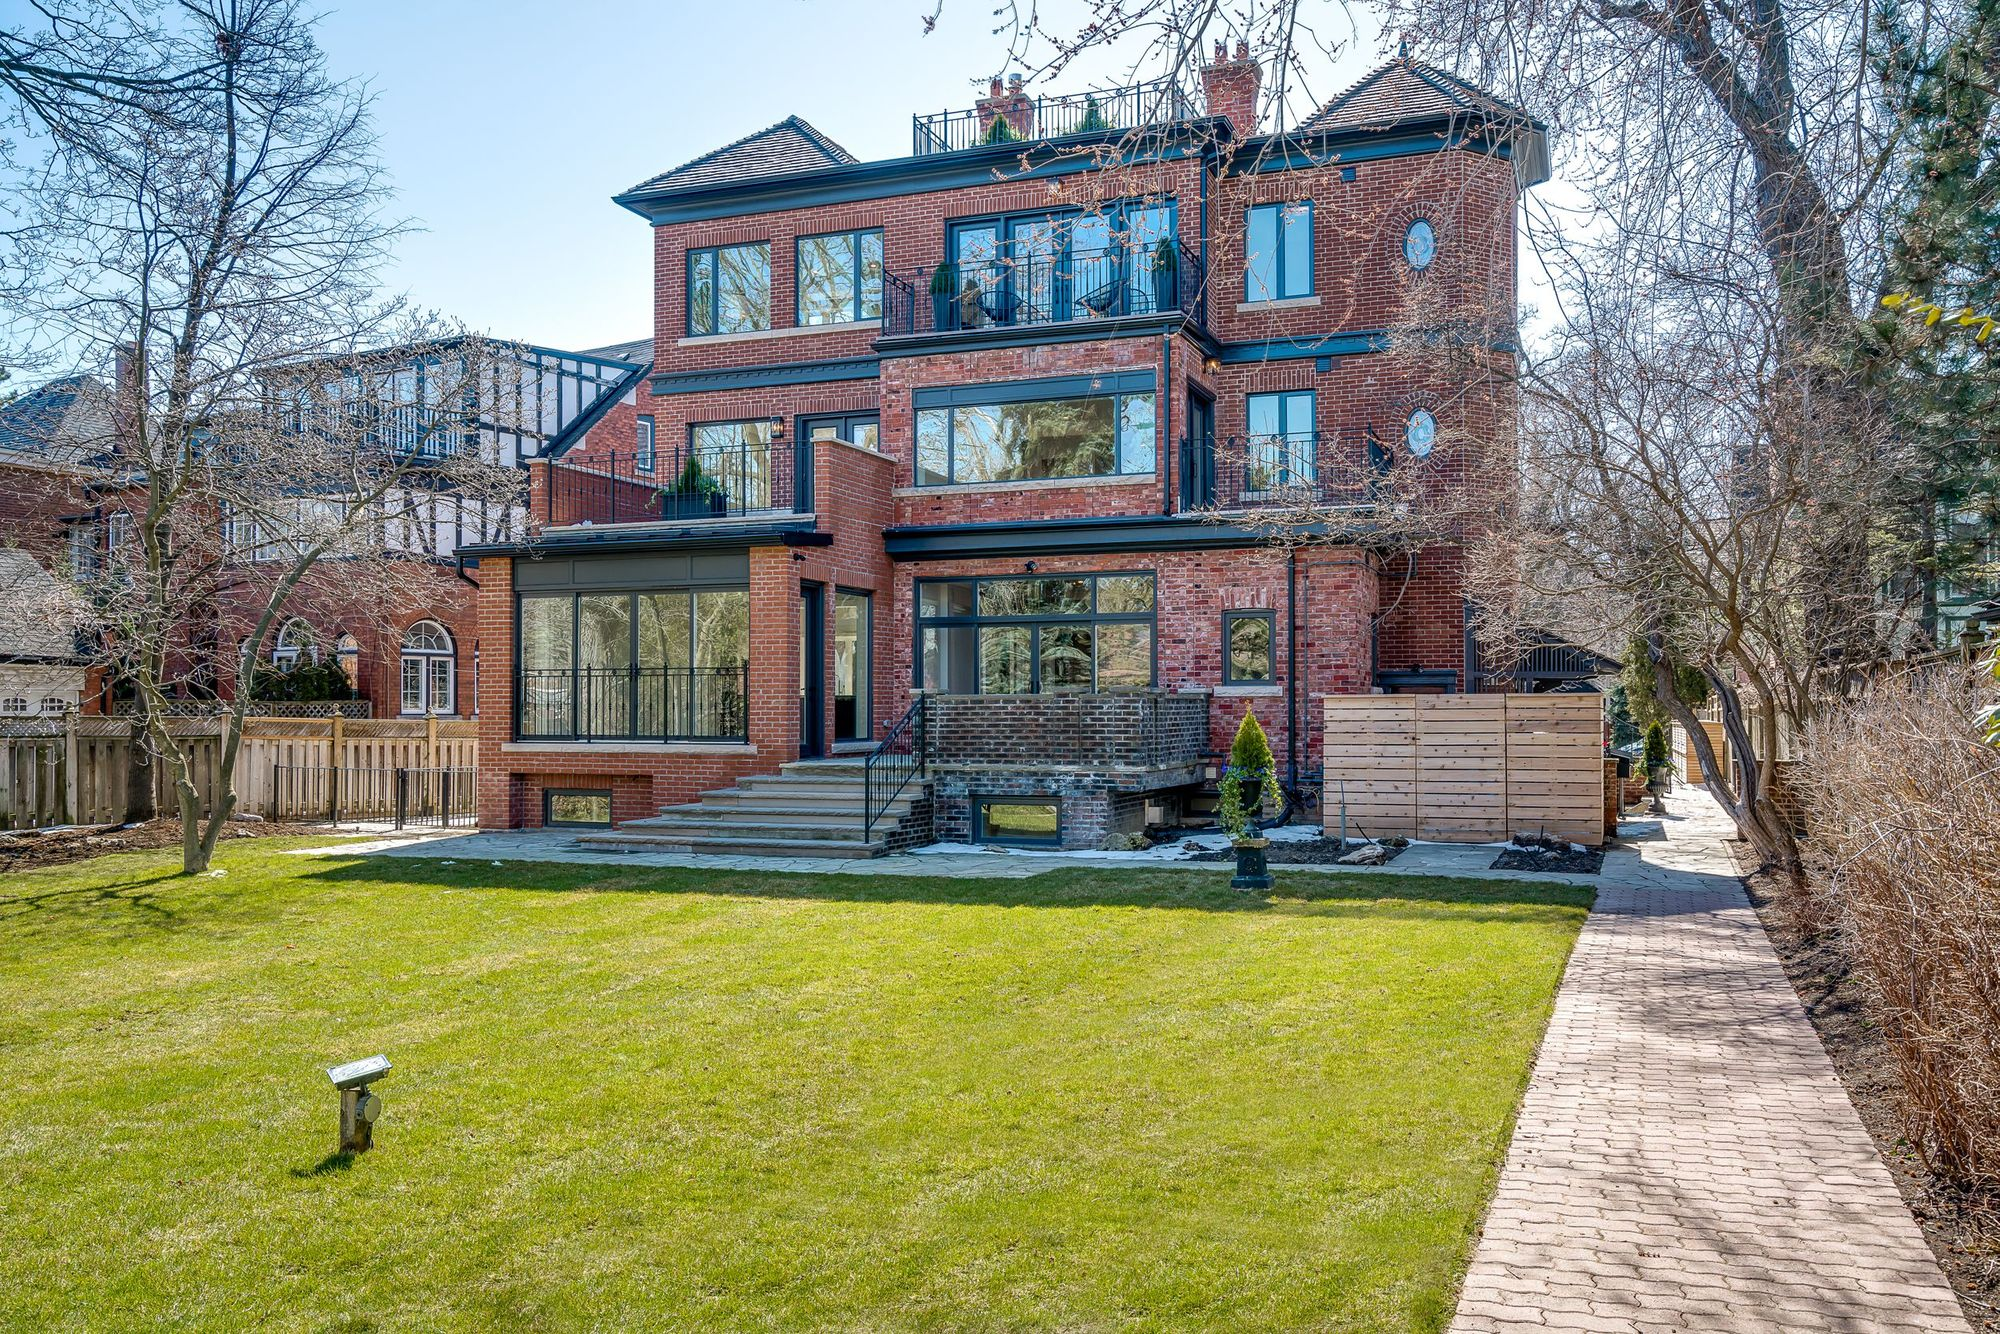 15 Scarth Rd Townhomes at 15 Scarth Rd. This condo townhouse is located in  Midtown, Toronto